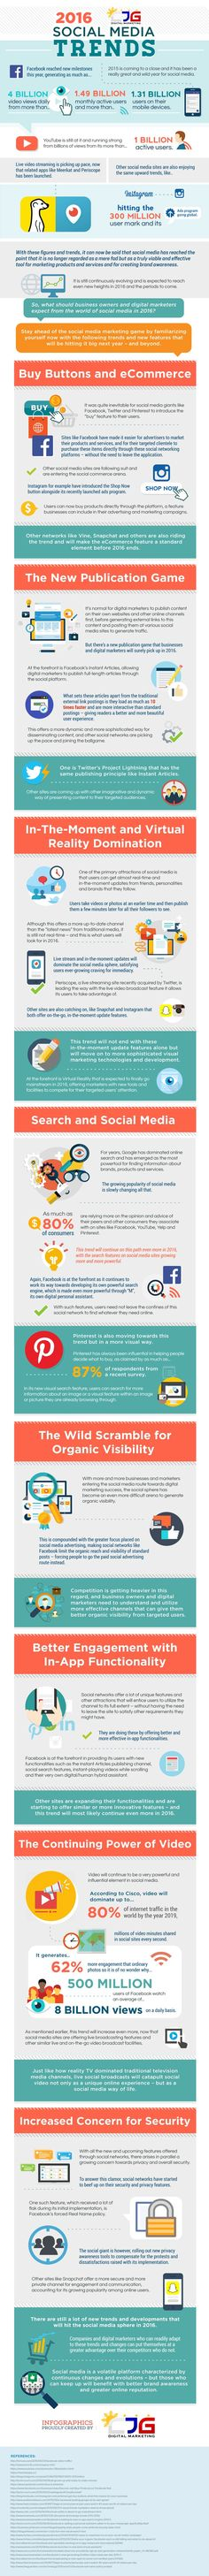 Social Media Marketing Trends 2016: Insights & Predictions - #infographic